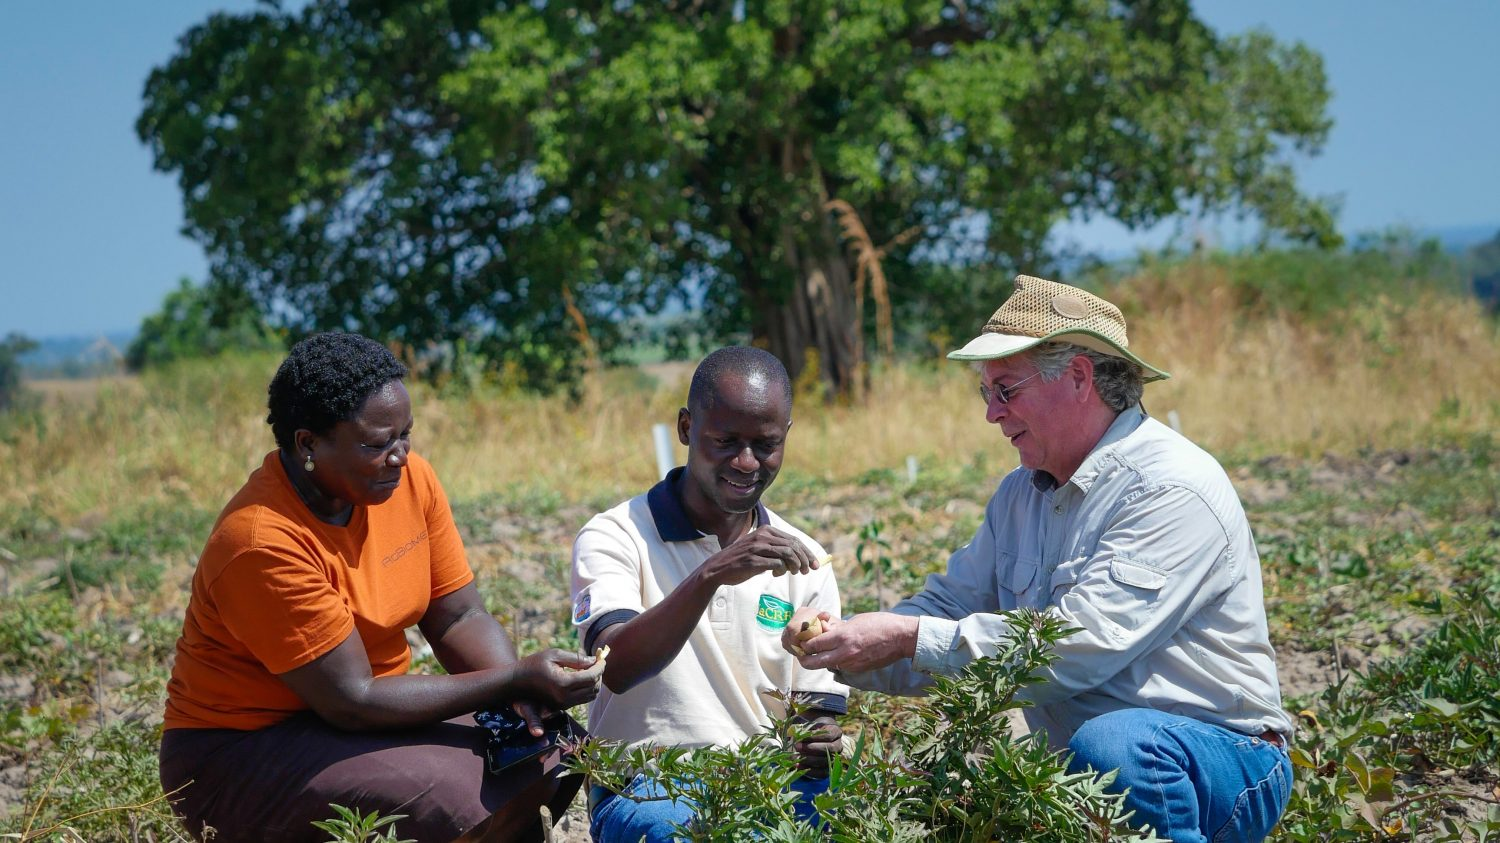 NC State Sweetpotato expert Dr. Craig Yencho crouches in a field in Uganda with Ugandan trainees